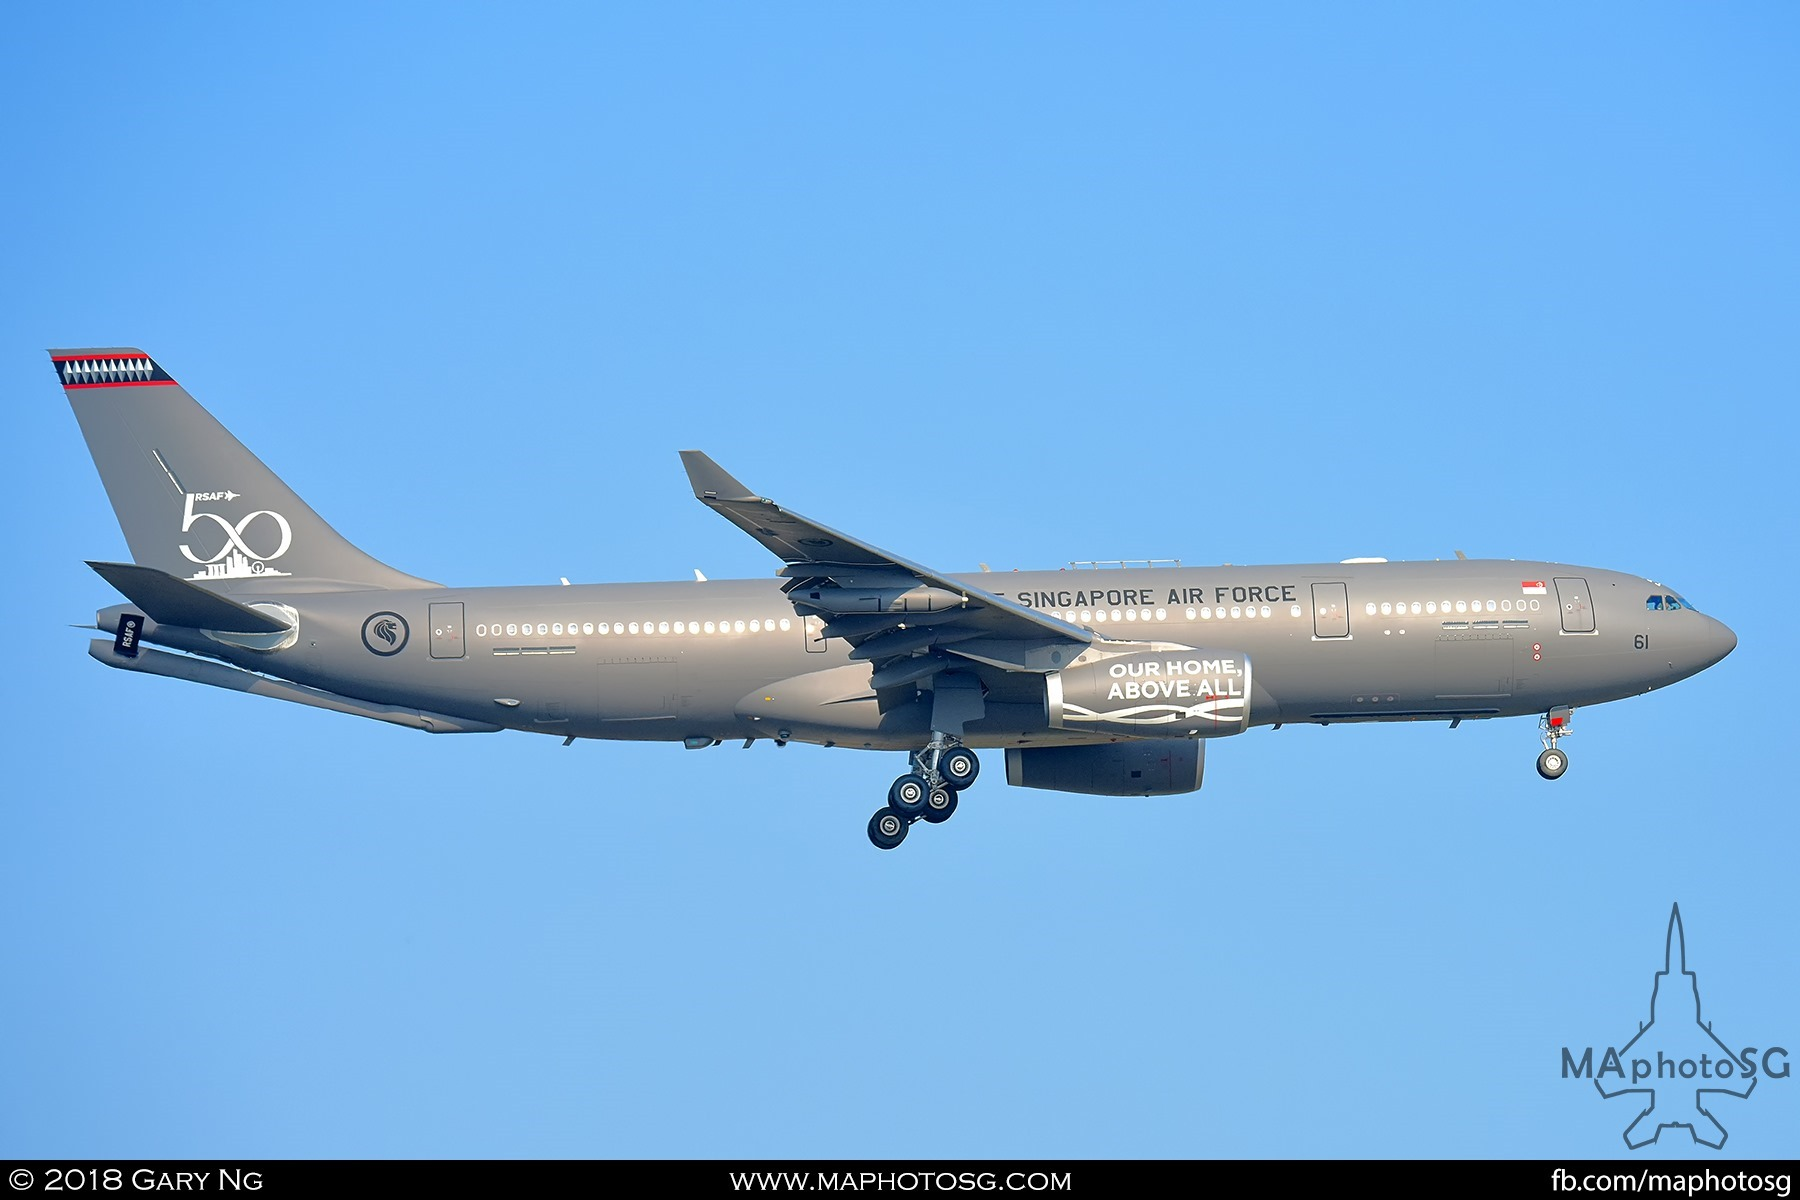 Republic of Singapore Air Force A330-MRTT (761)